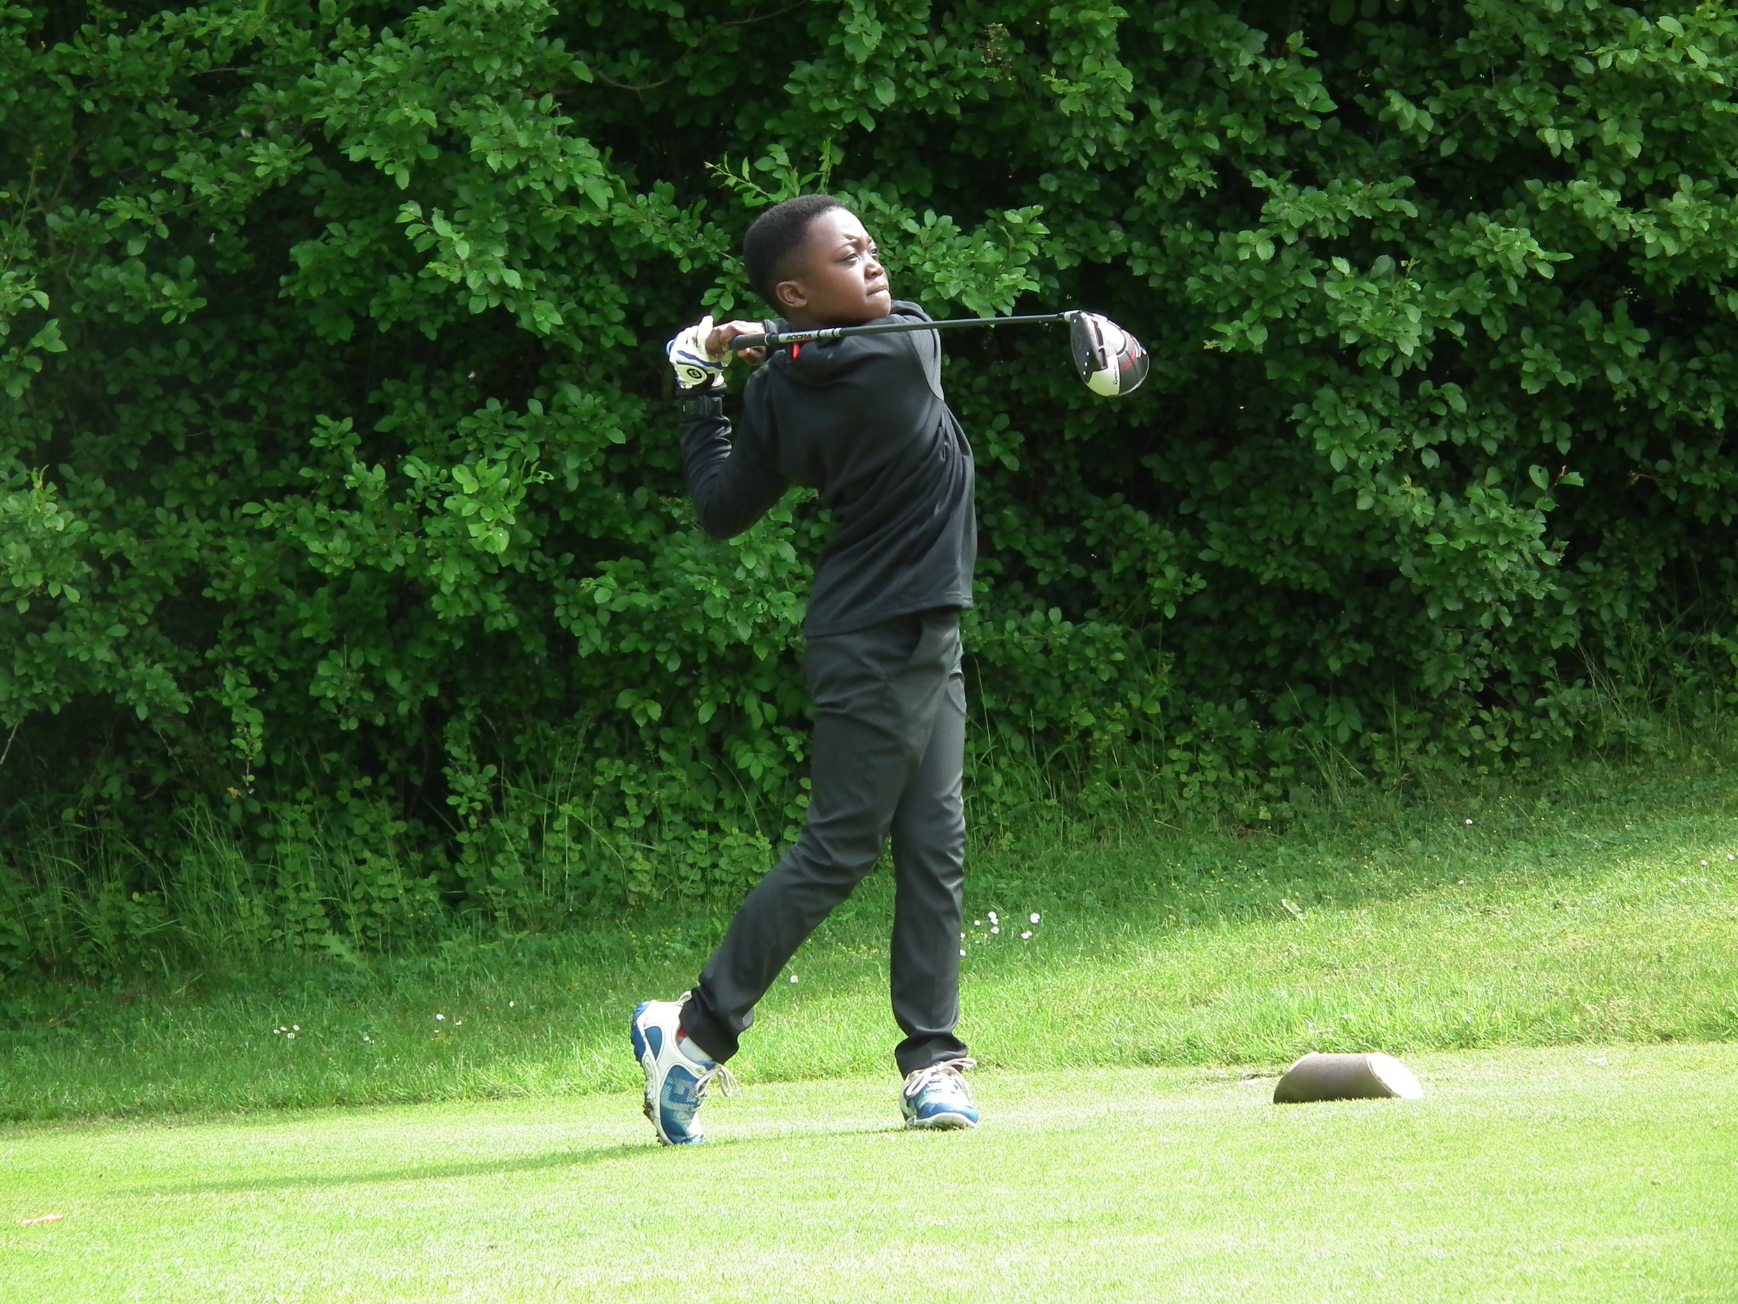 BBC Midlands Today - See more on Twitter @Sarfogolf